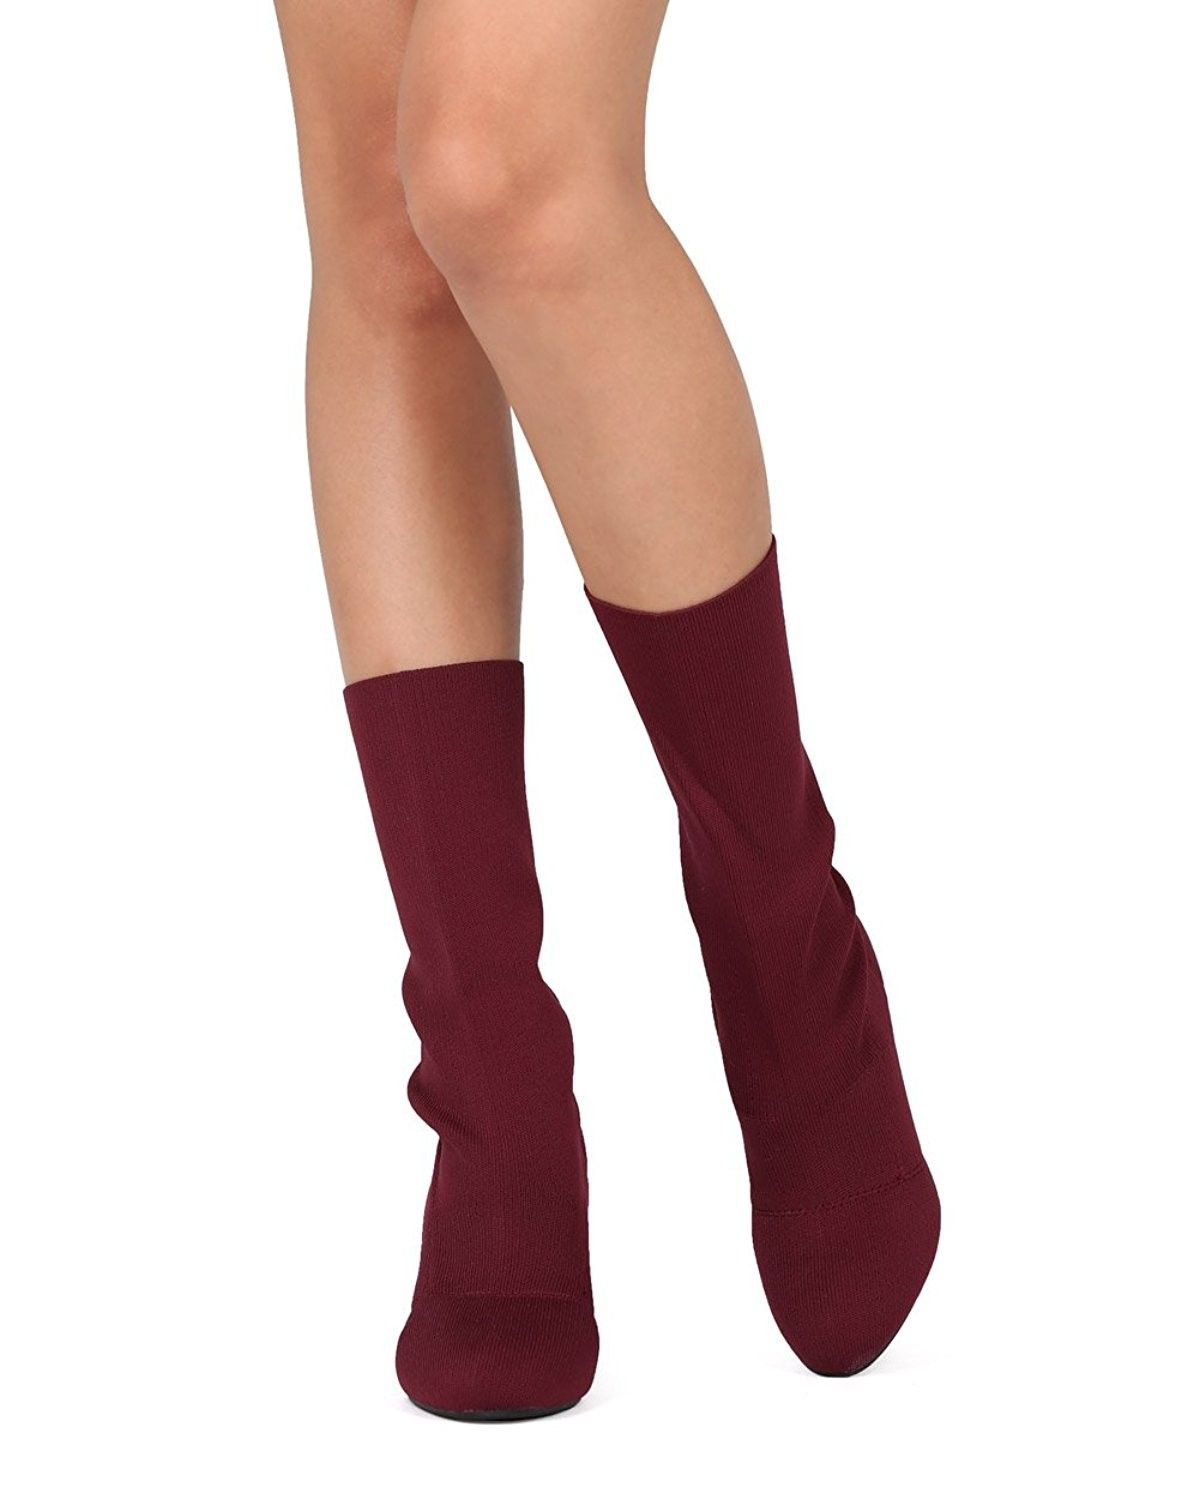 e697fc85ffc6 Women Mid Calf Block Heel Sock Boot - Knitted Chunky Heel Tall Boot -  Sophie-I - Wine Cotton - CT186Q33QW5 - Women s Shoes